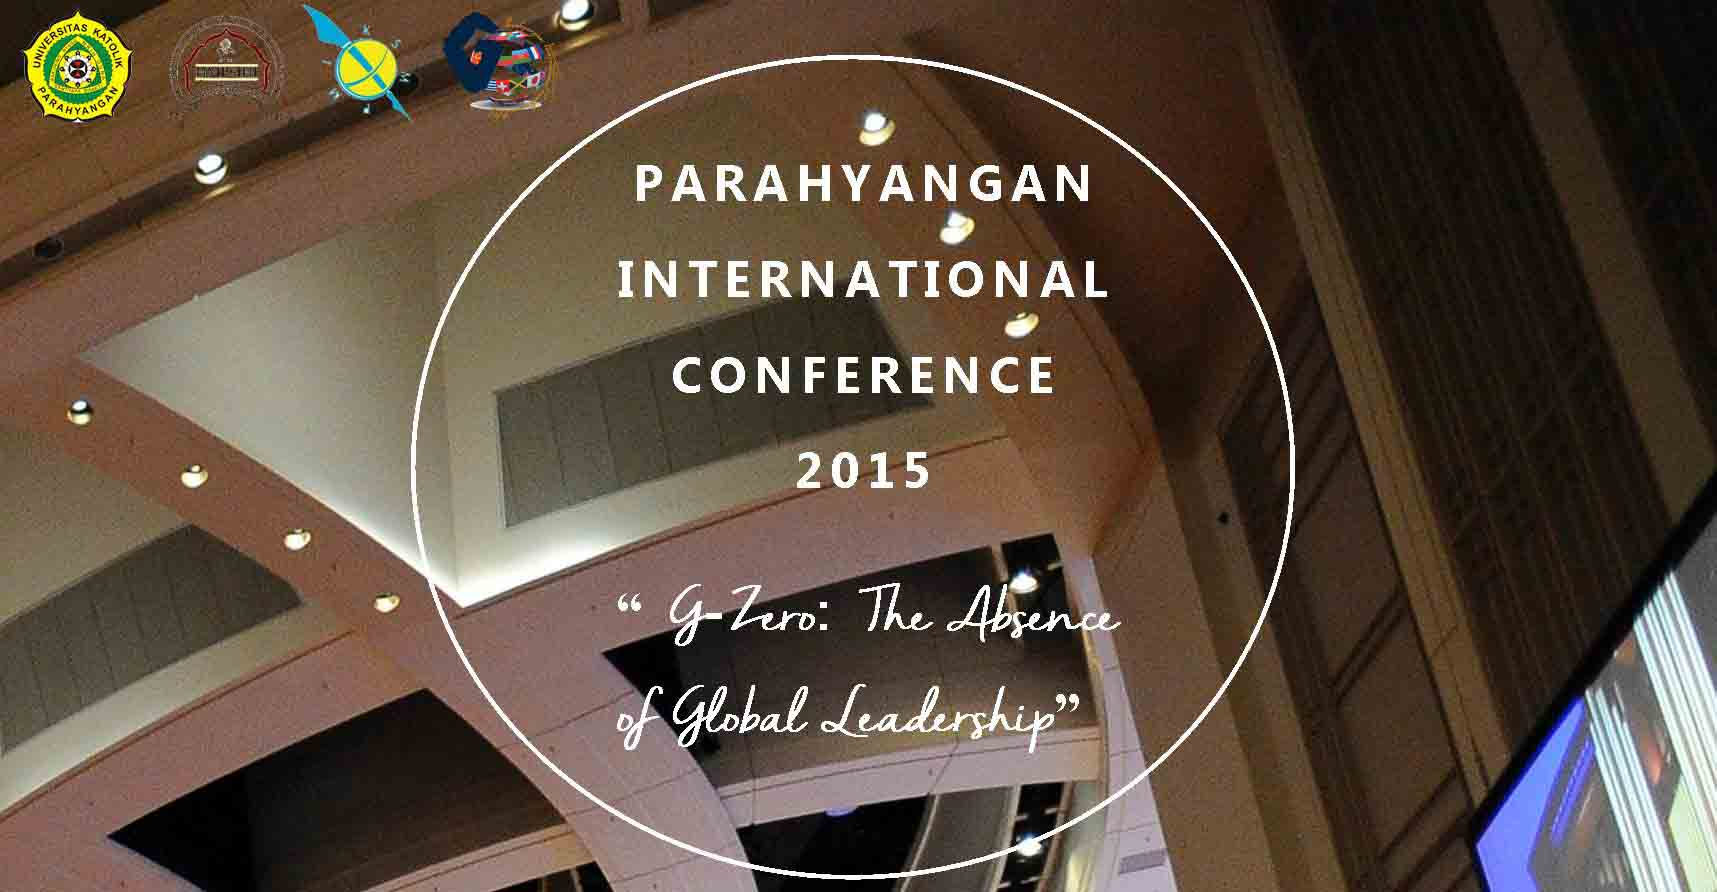 """Parahyangan International Conference 2015, """"G-Zero: The Absence of Global Leadership"""""""